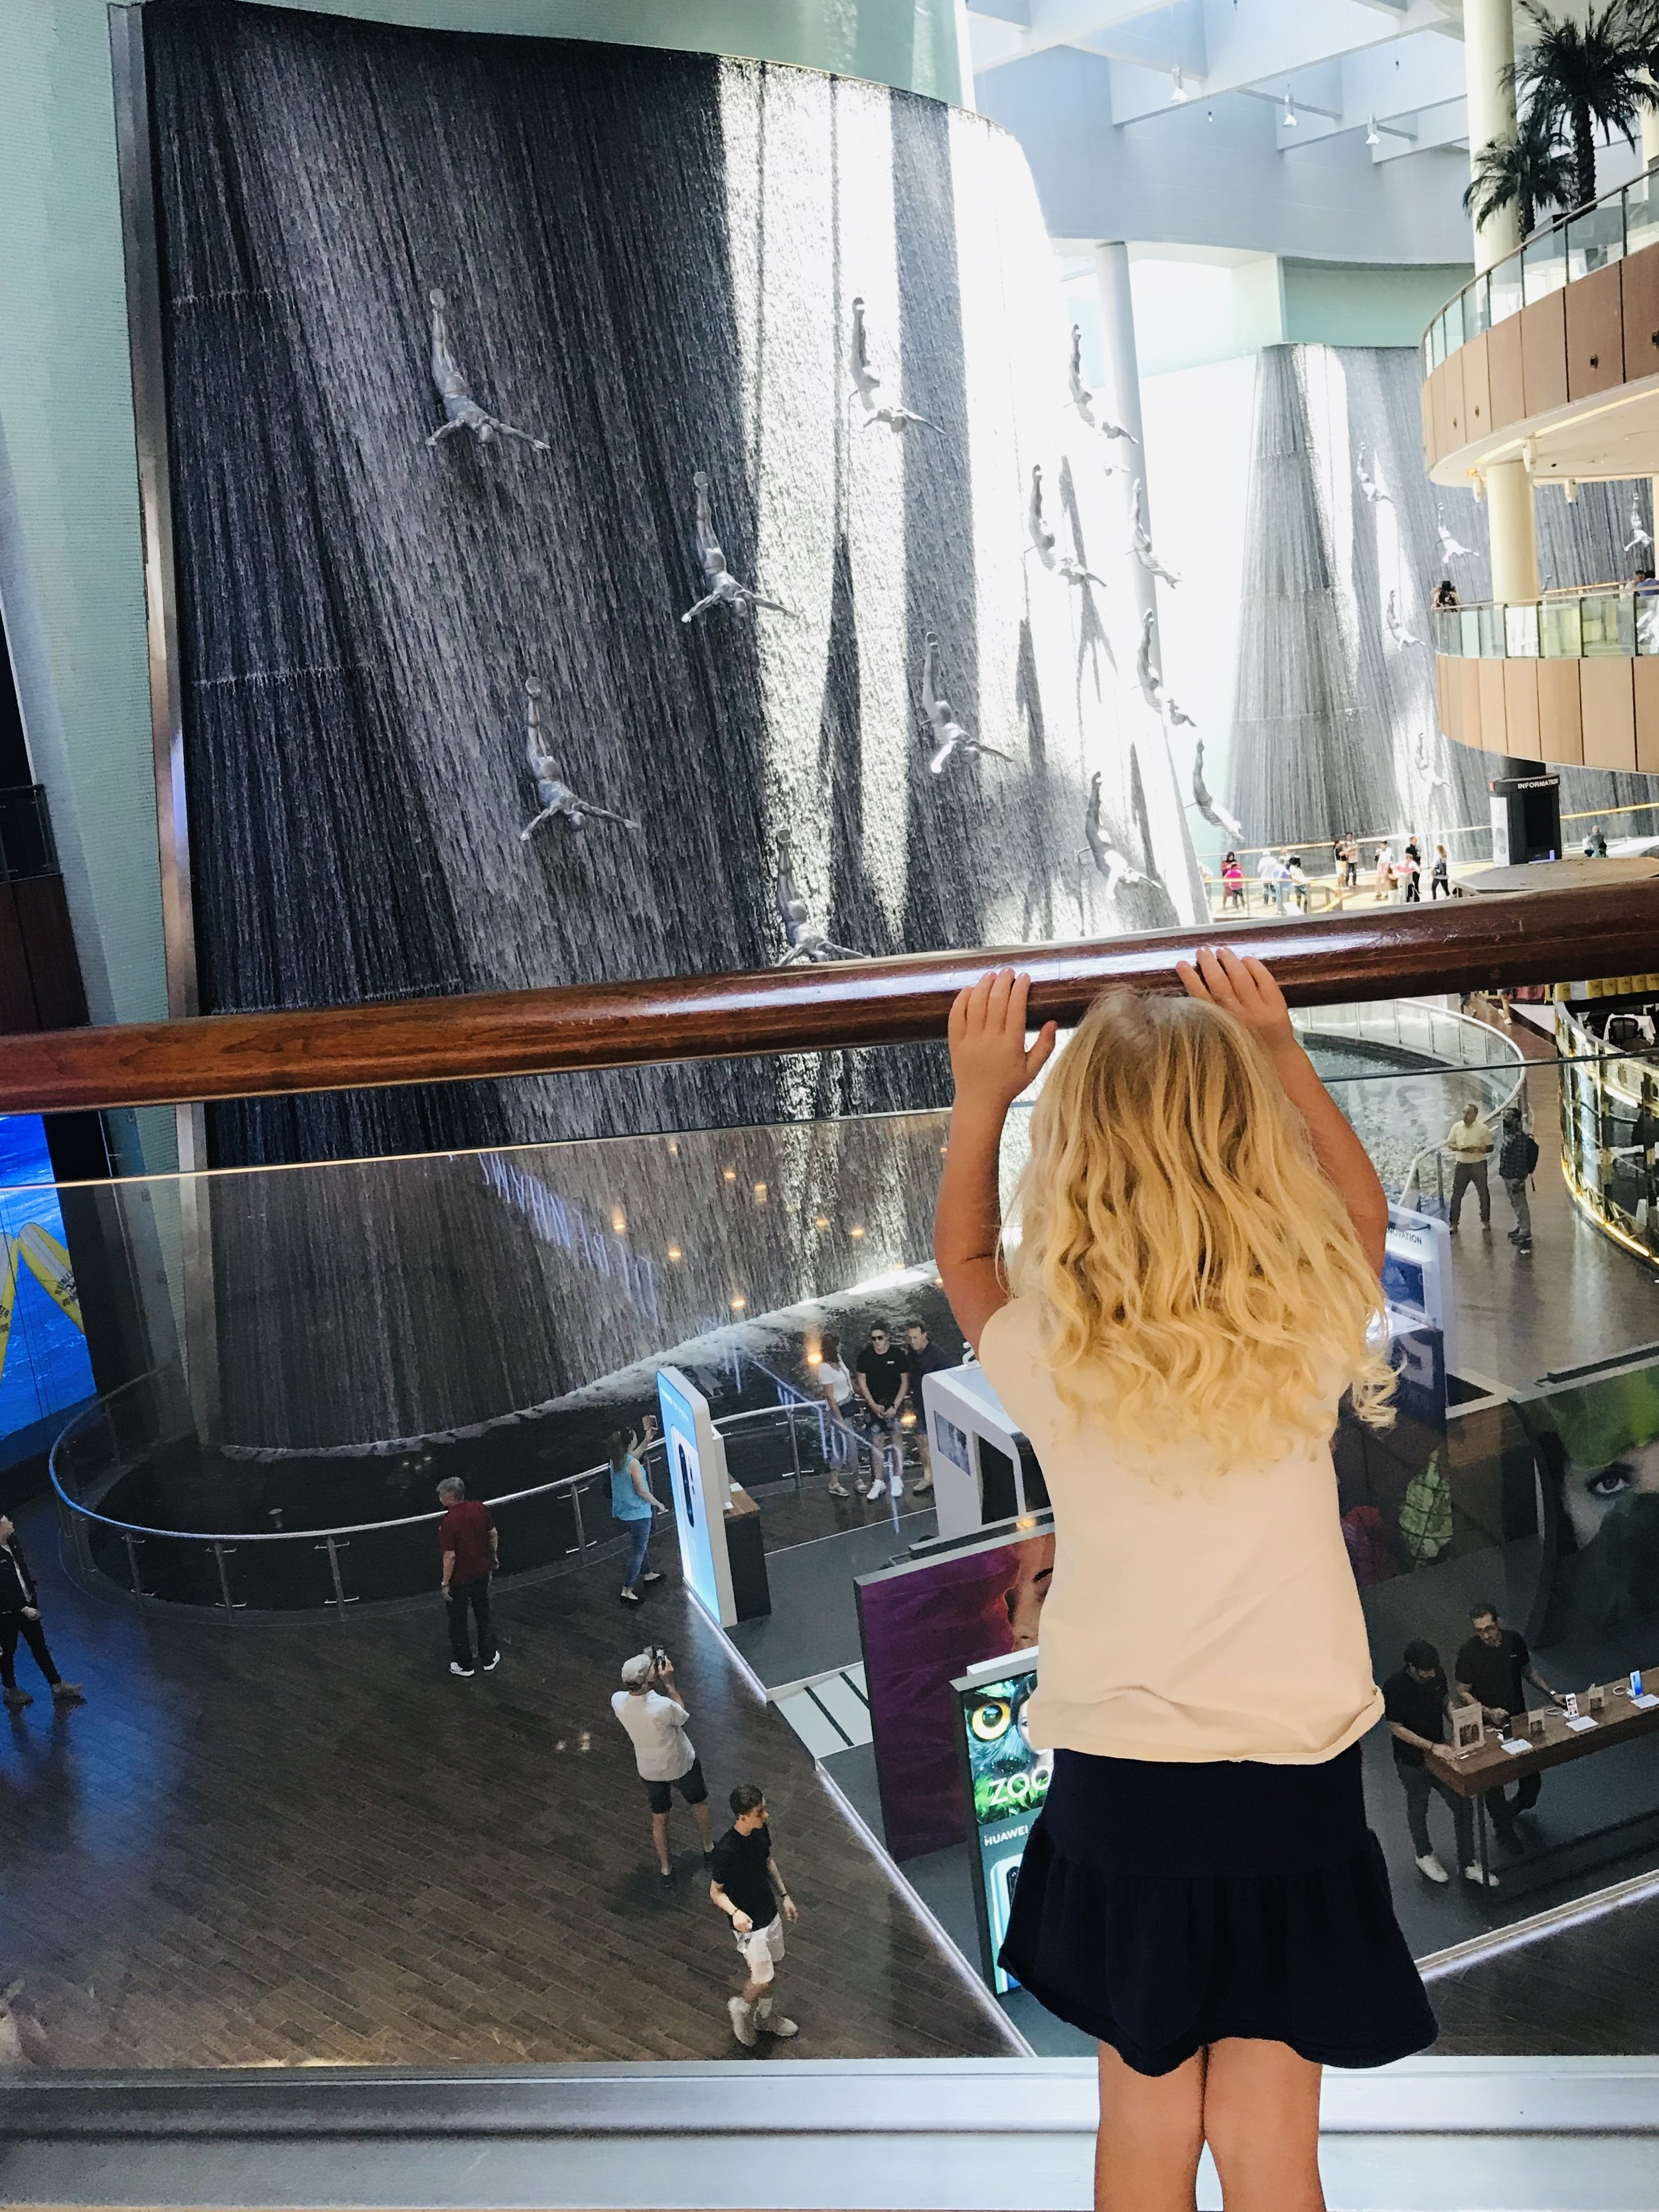 The indoor waterfall at The Dubai Mall